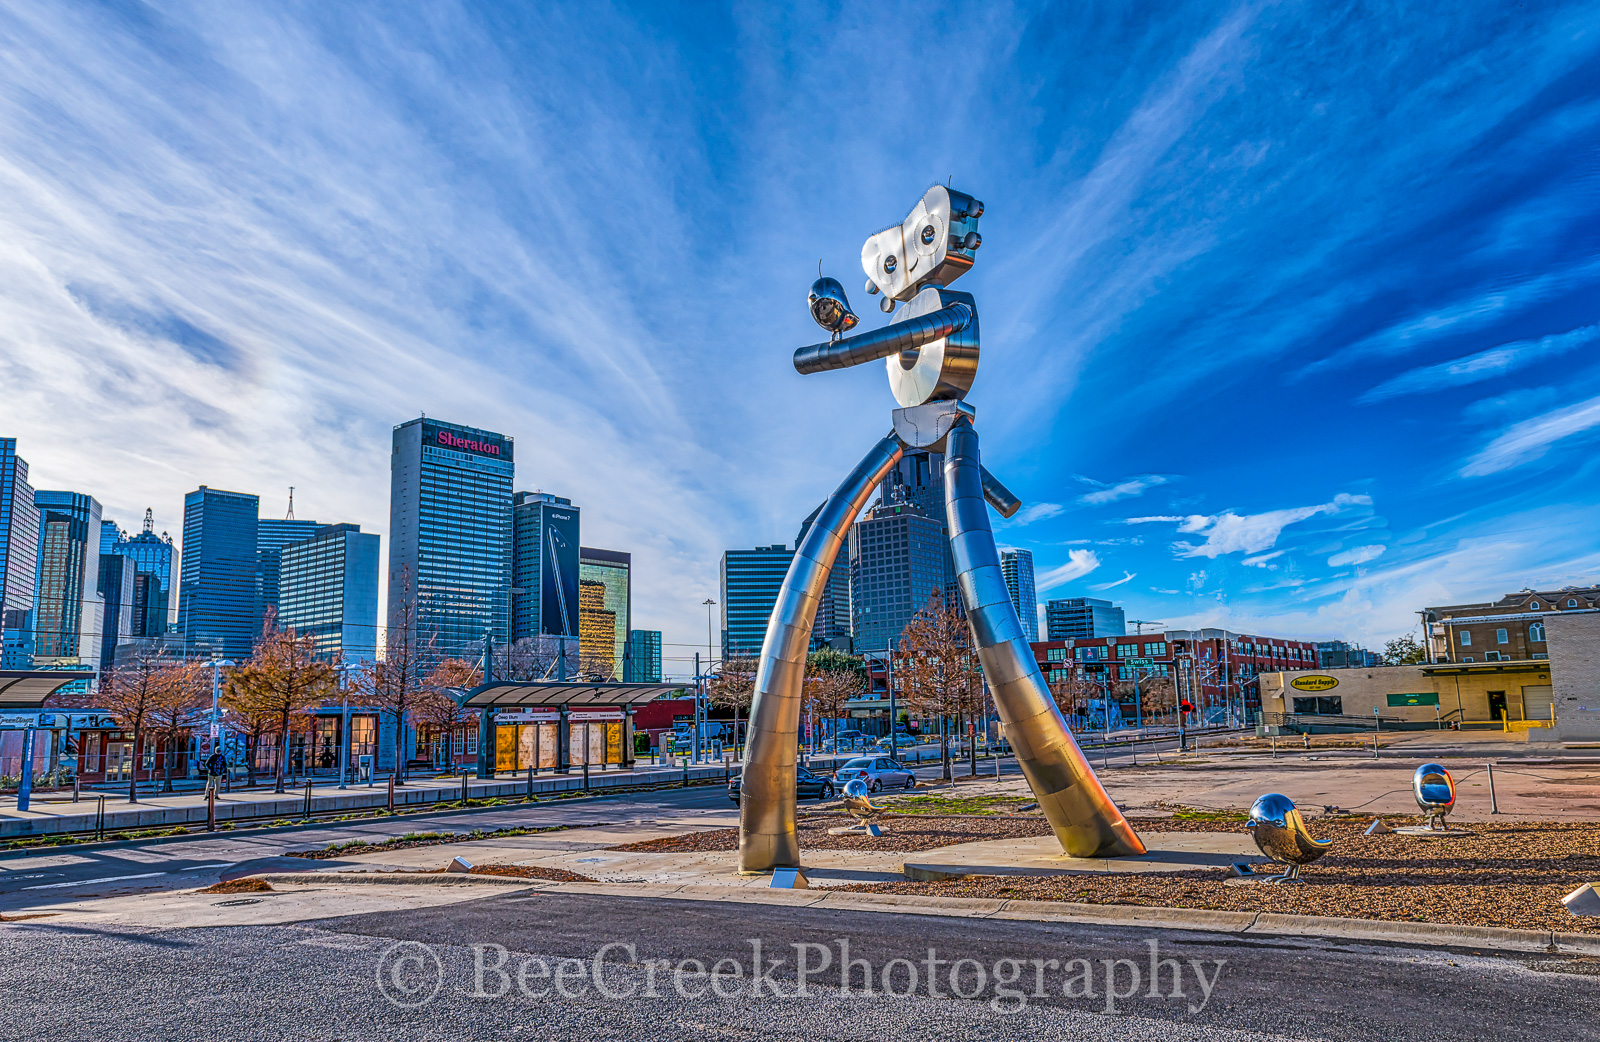 Dallas, Deep Ellum, bird, birds, cityscape, cityscapes, day, images of dallas, mass transit, photos of Dallas, pictures of Dallas, robot, scuplture, skyline, strolling, train, traveling man, us, usa, photo